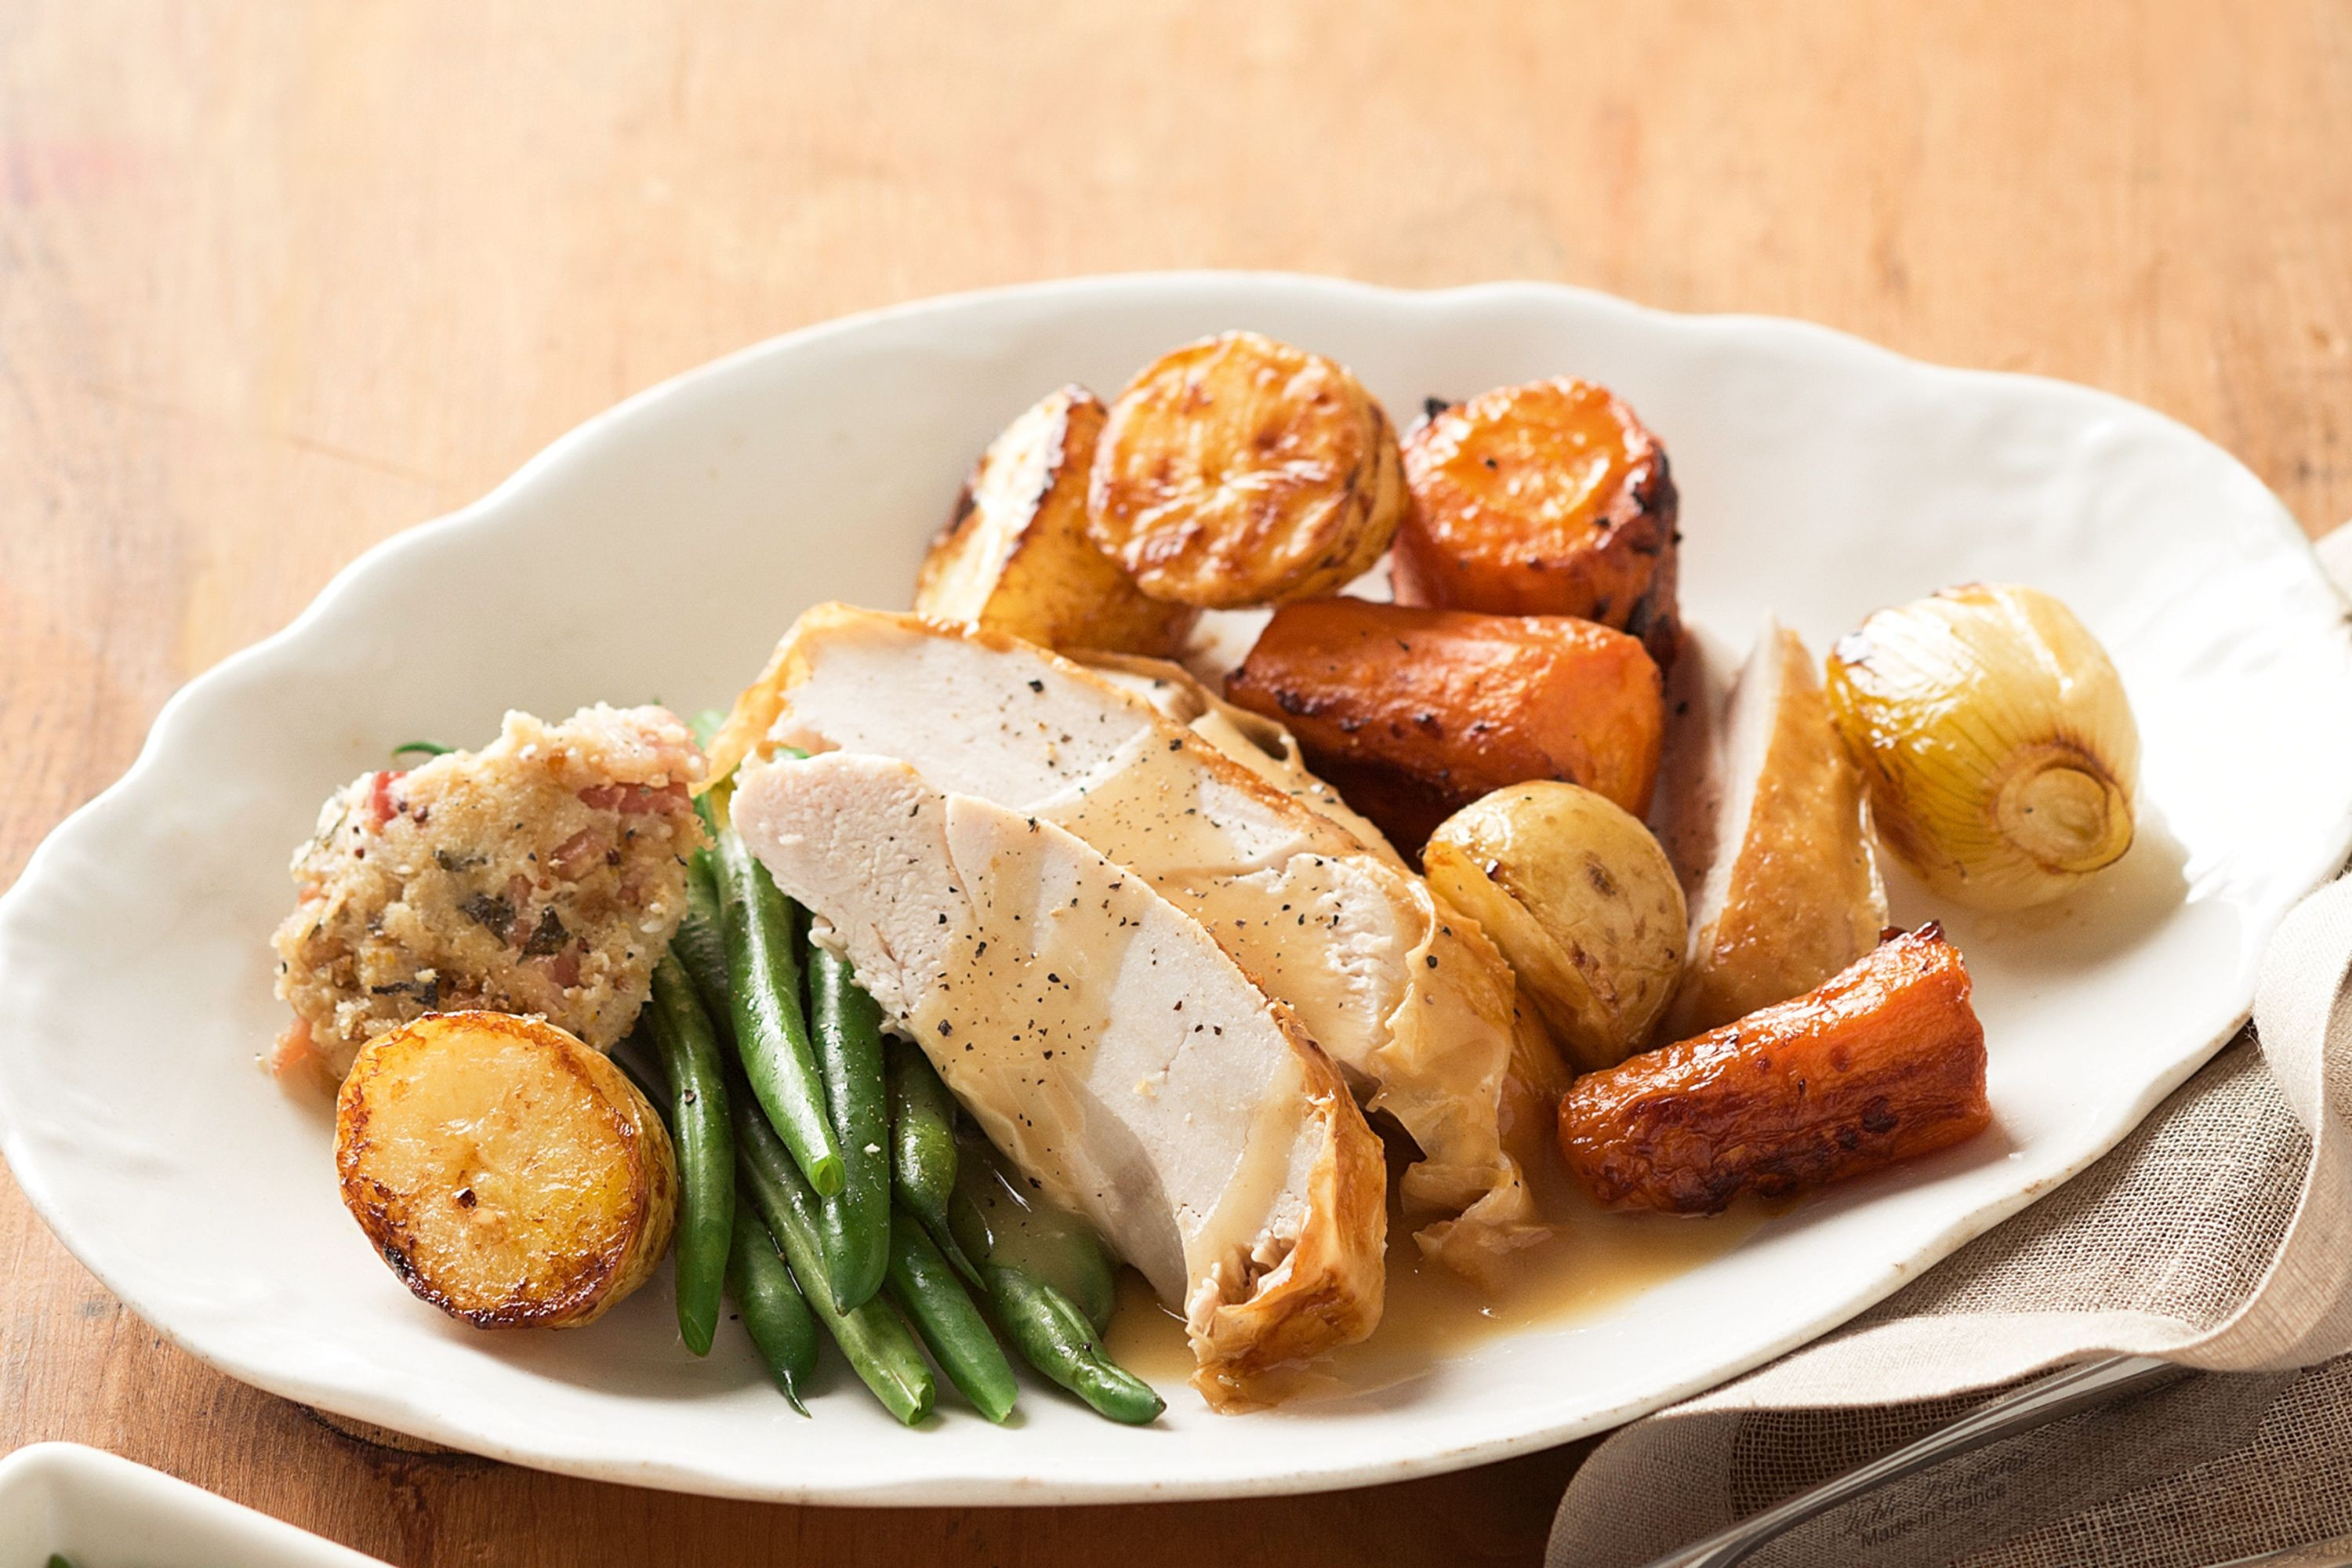 roast-chicken-with-bacon-and-sage-stuffing-92483-1